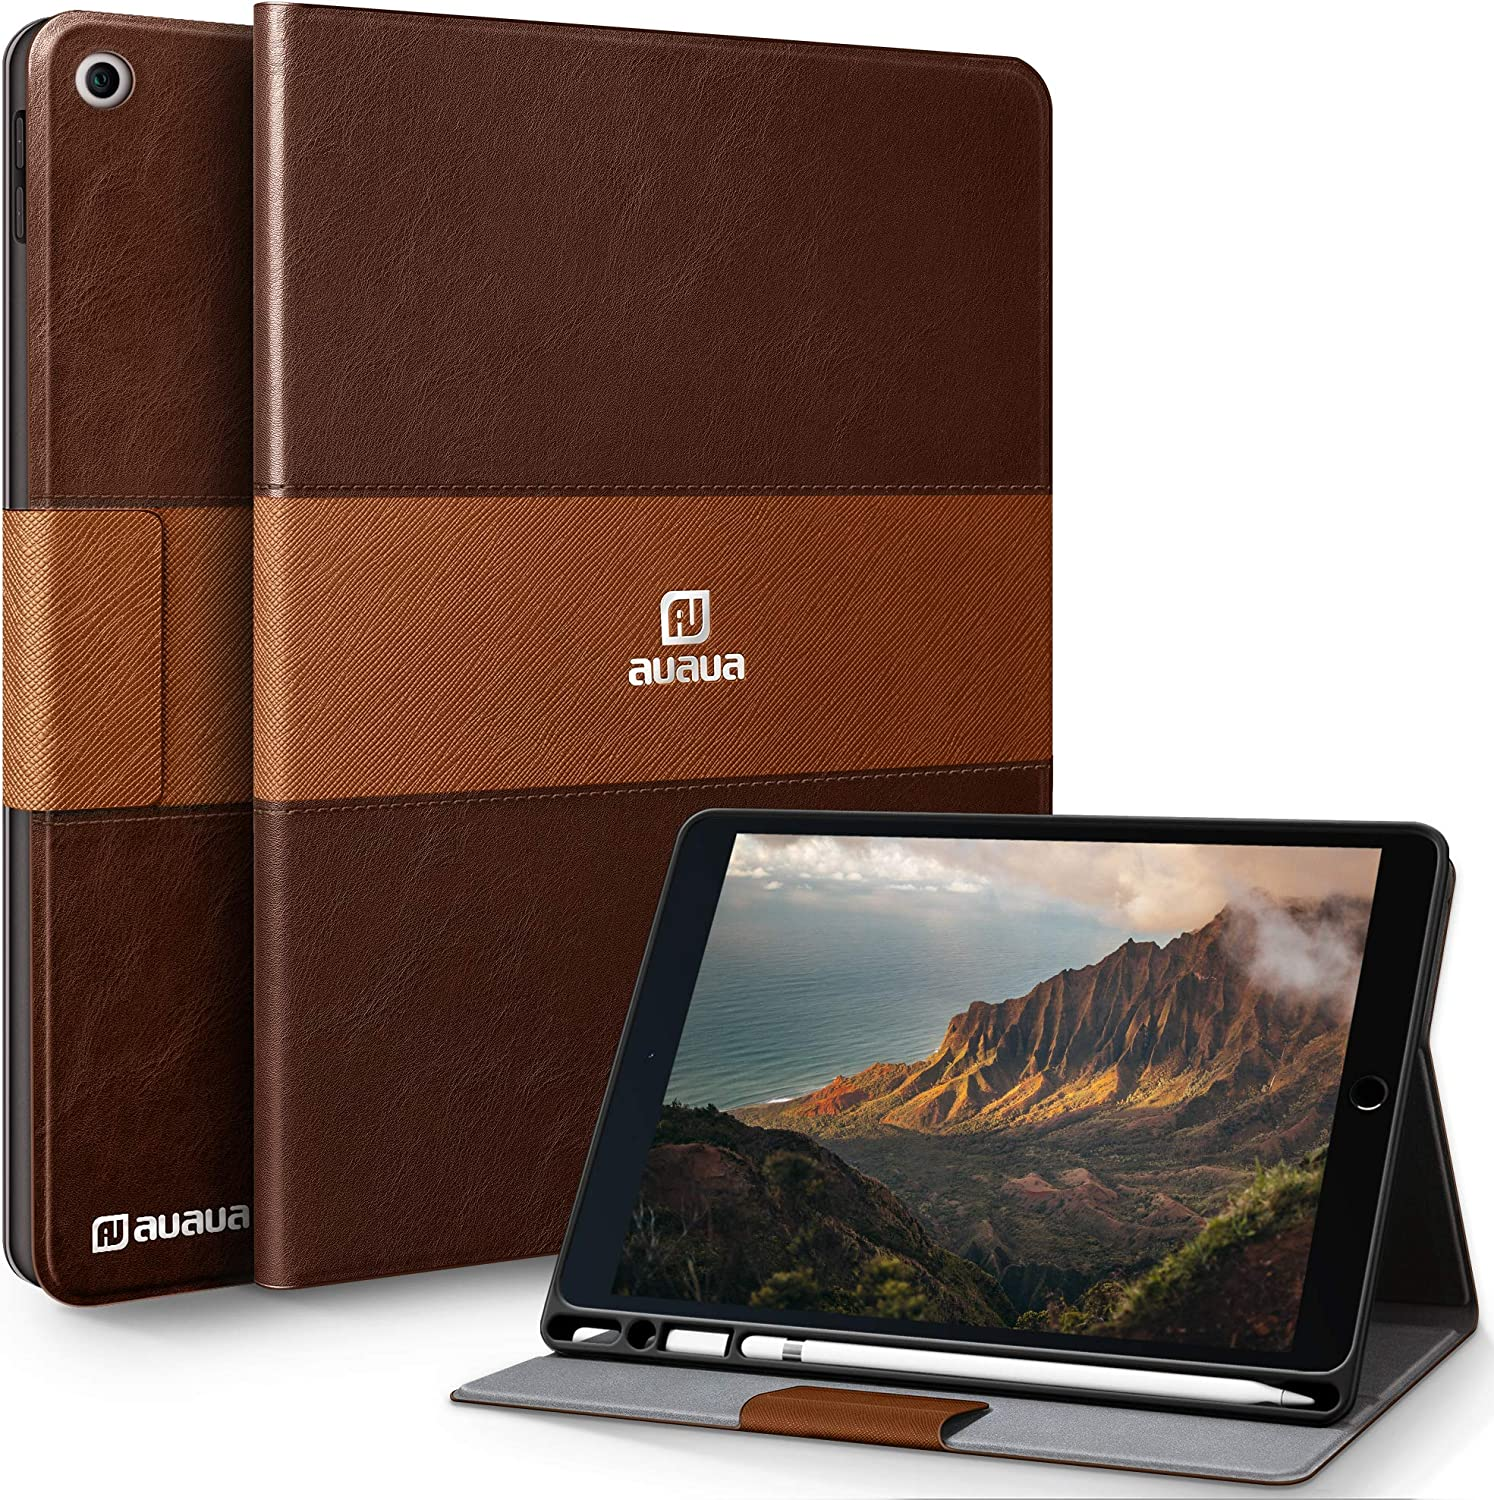 AUAUA iPad 9.7 2018/2017 Case with Built-in Apple Pencil Holder Two-Color Stitching Auto Sleep/Wake Function PU Leather Smart Case Cover for iPad 6th/5th Generation (Brown)